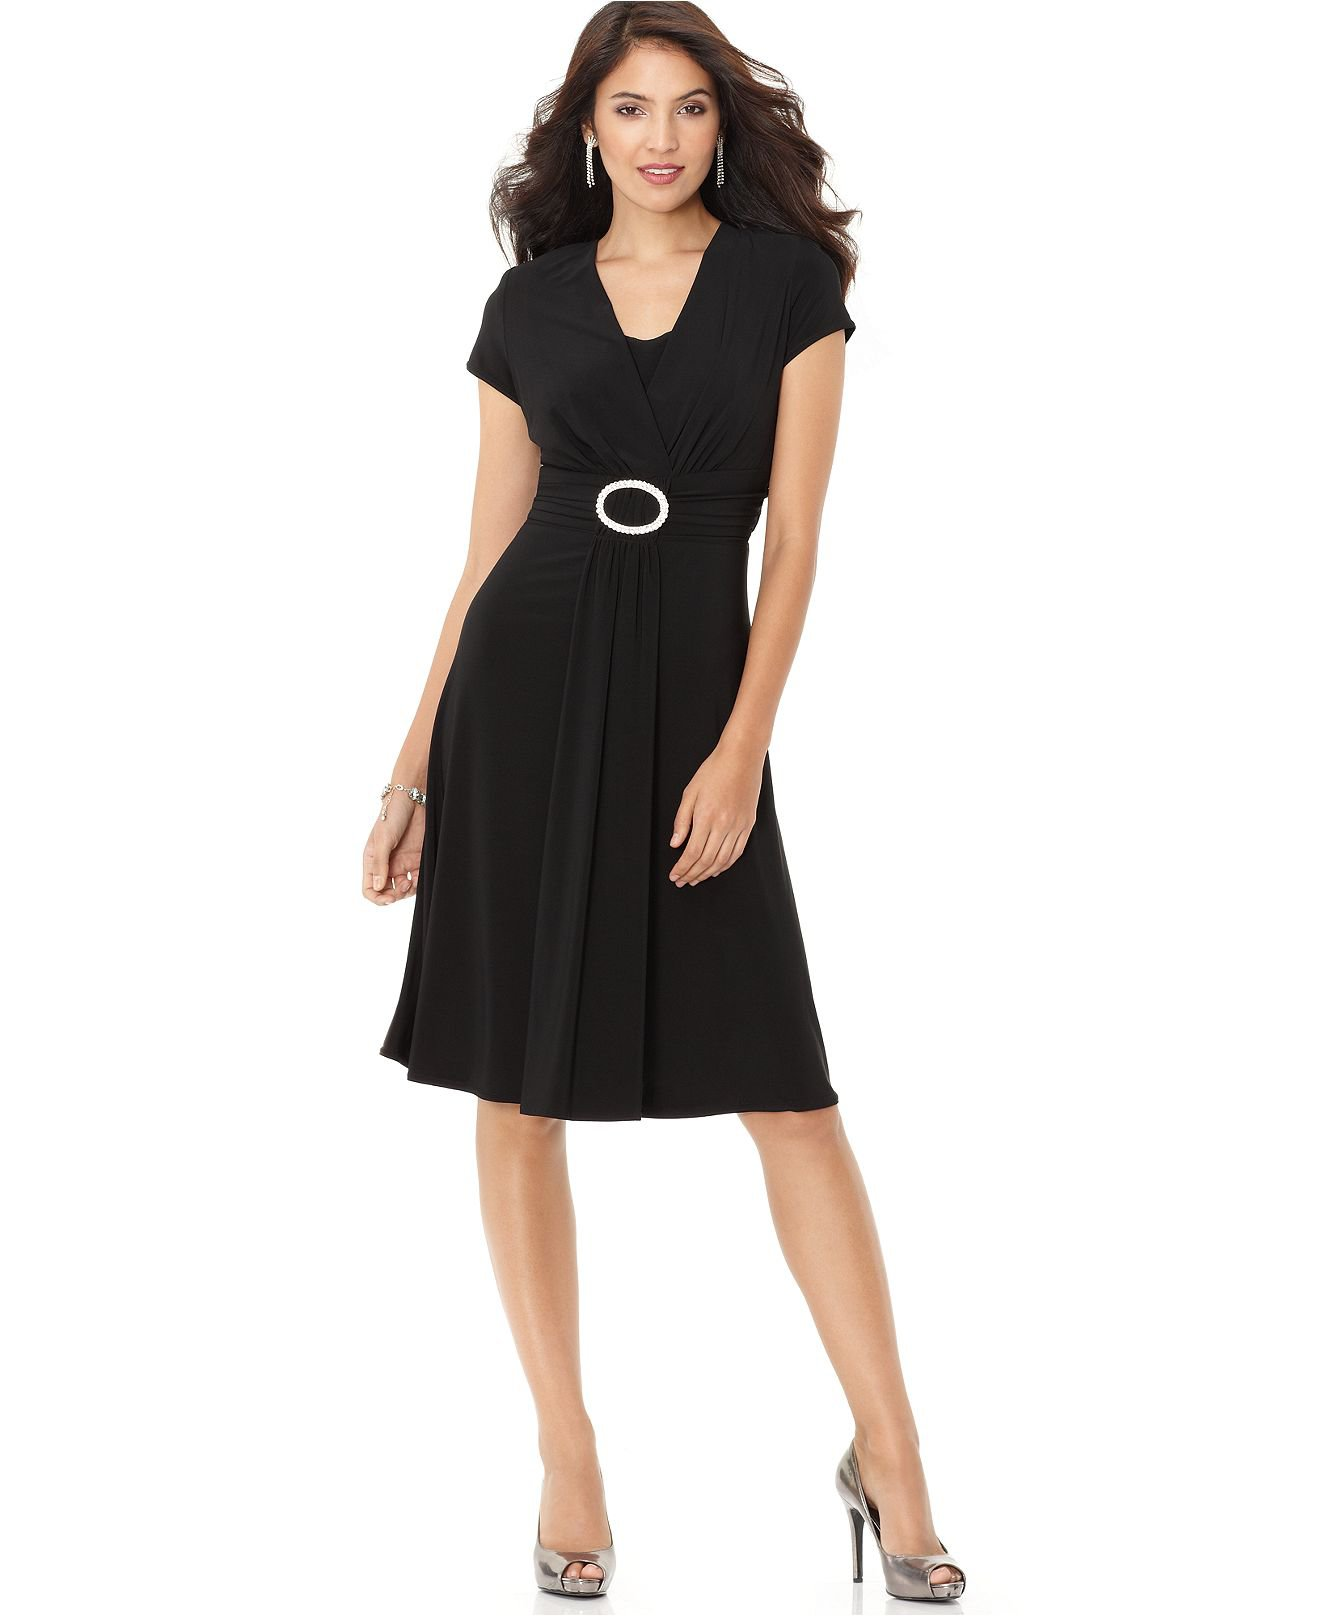 R m richards dress cap sleeve cocktail from macys if i had for Macy s dresses for weddings